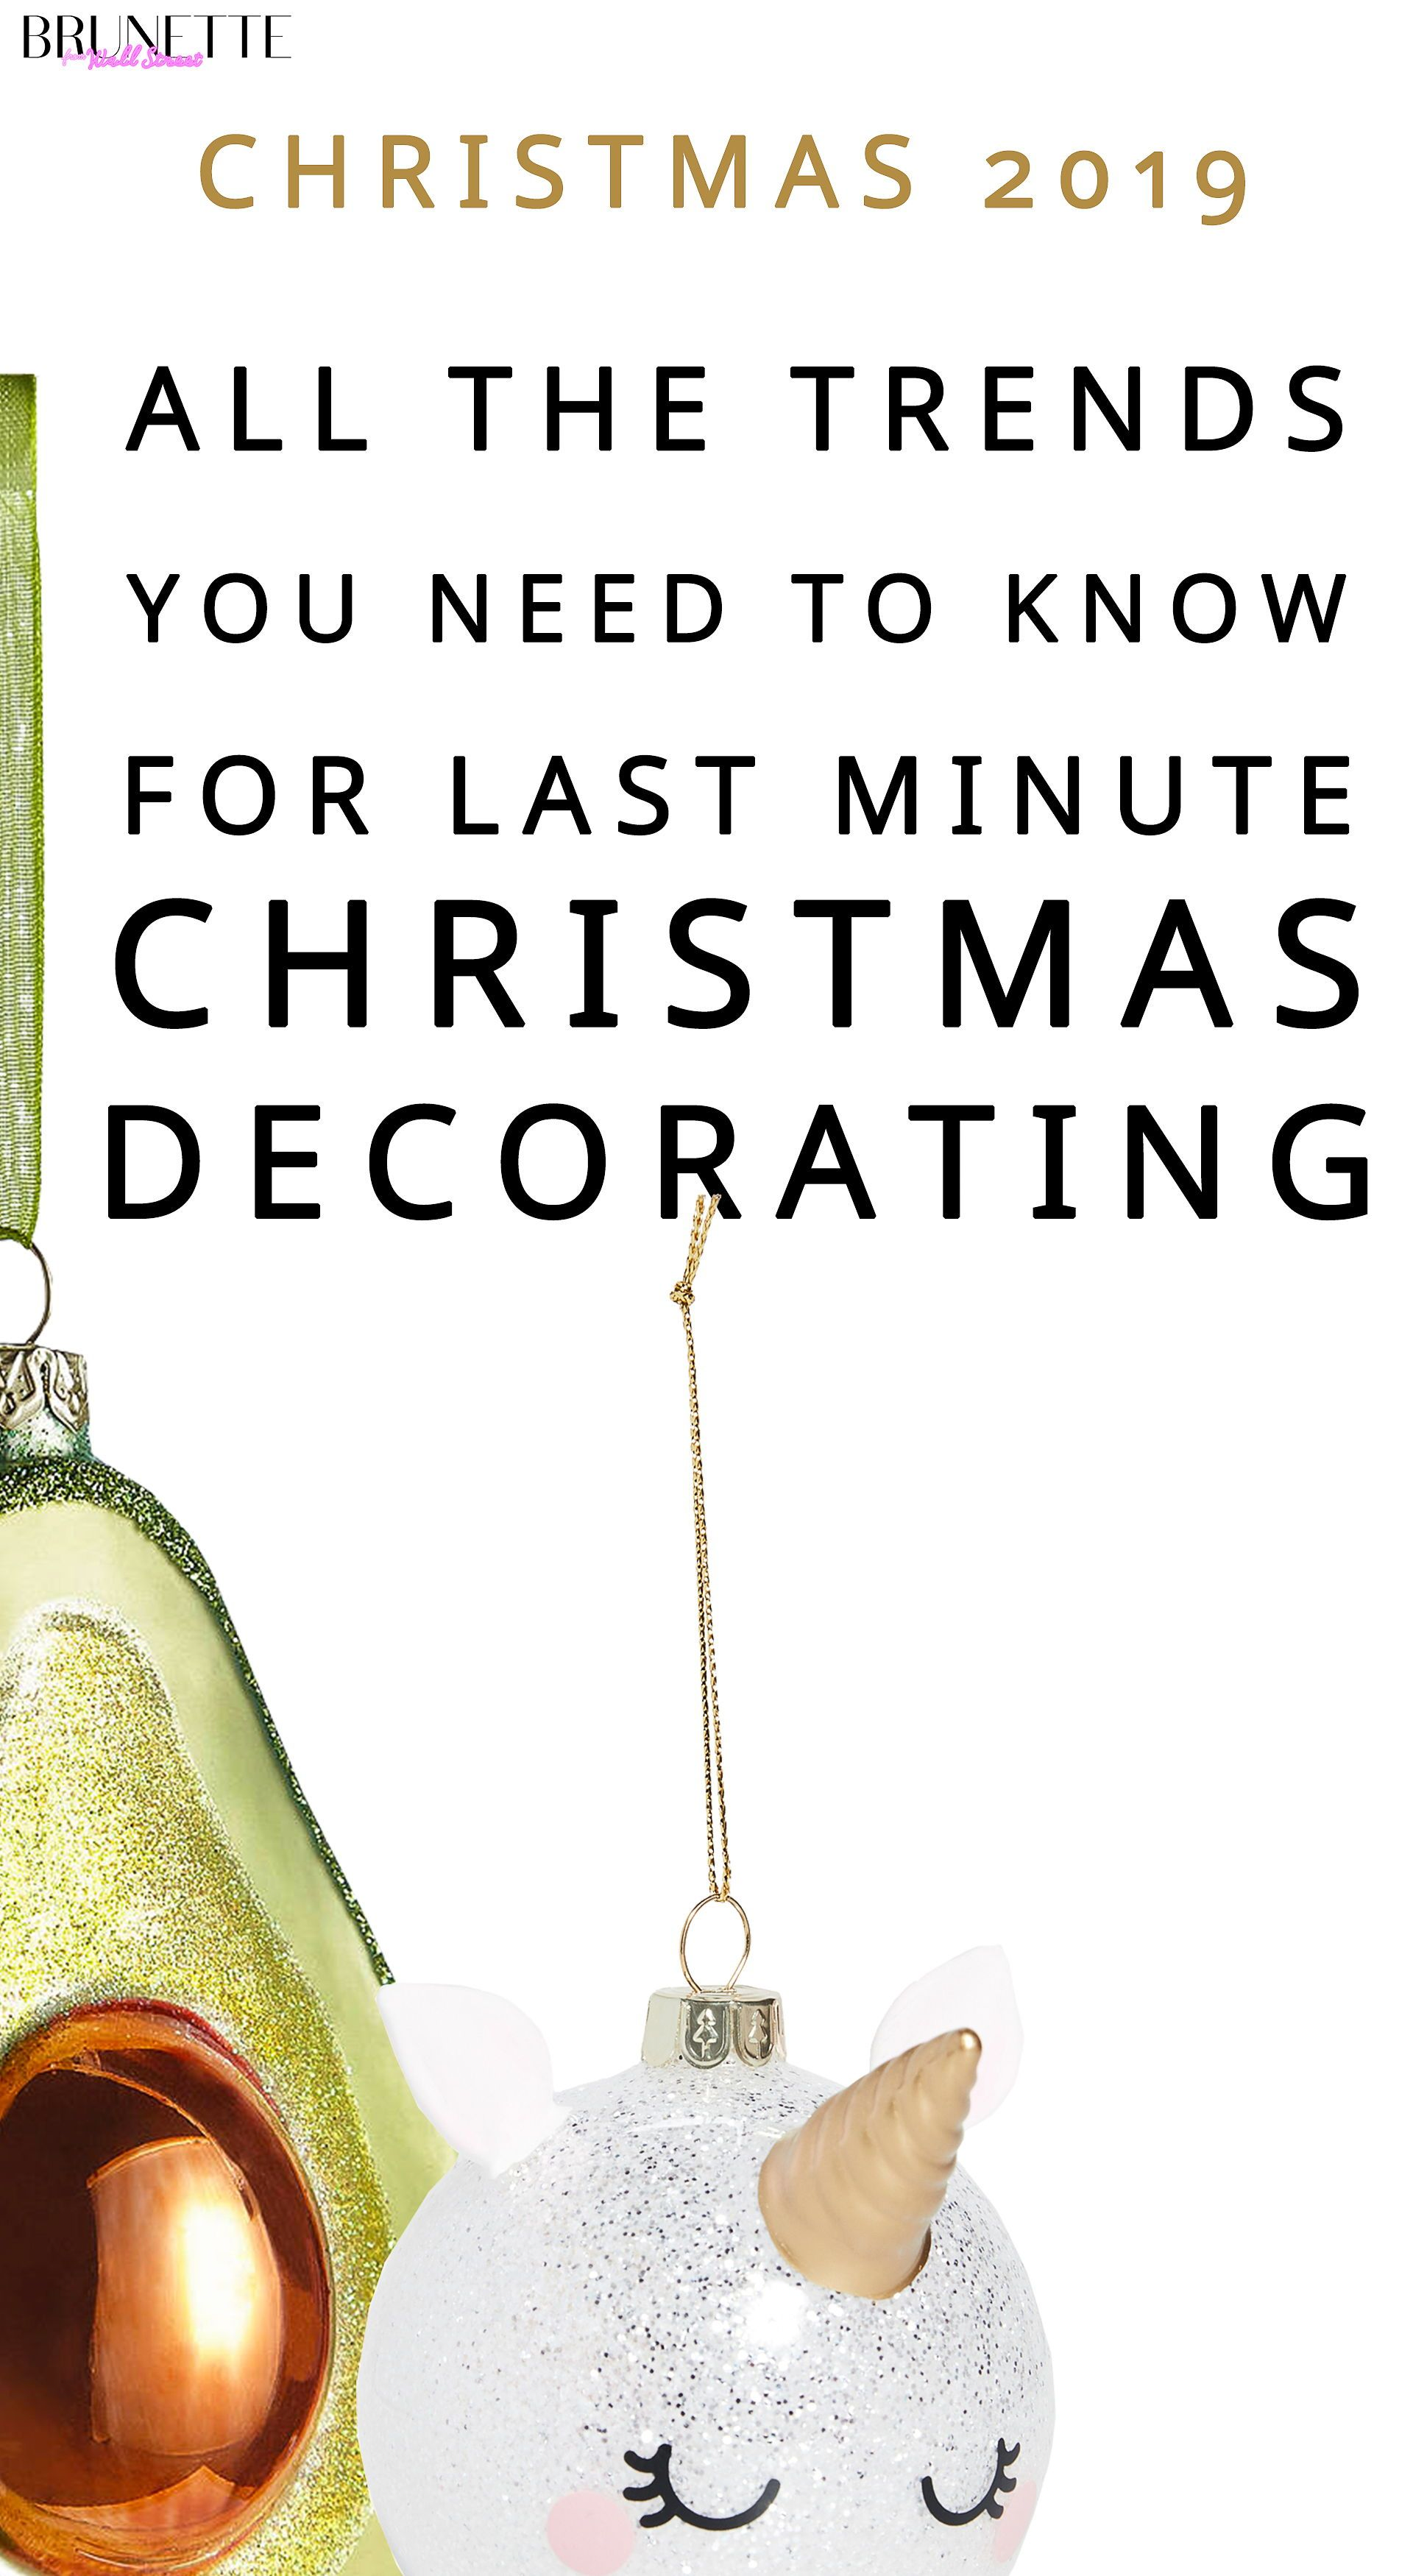 Most Popular Christmas Ornaments 2020 How to Decorate Home for Christmas 2020? | Brunette from Wall